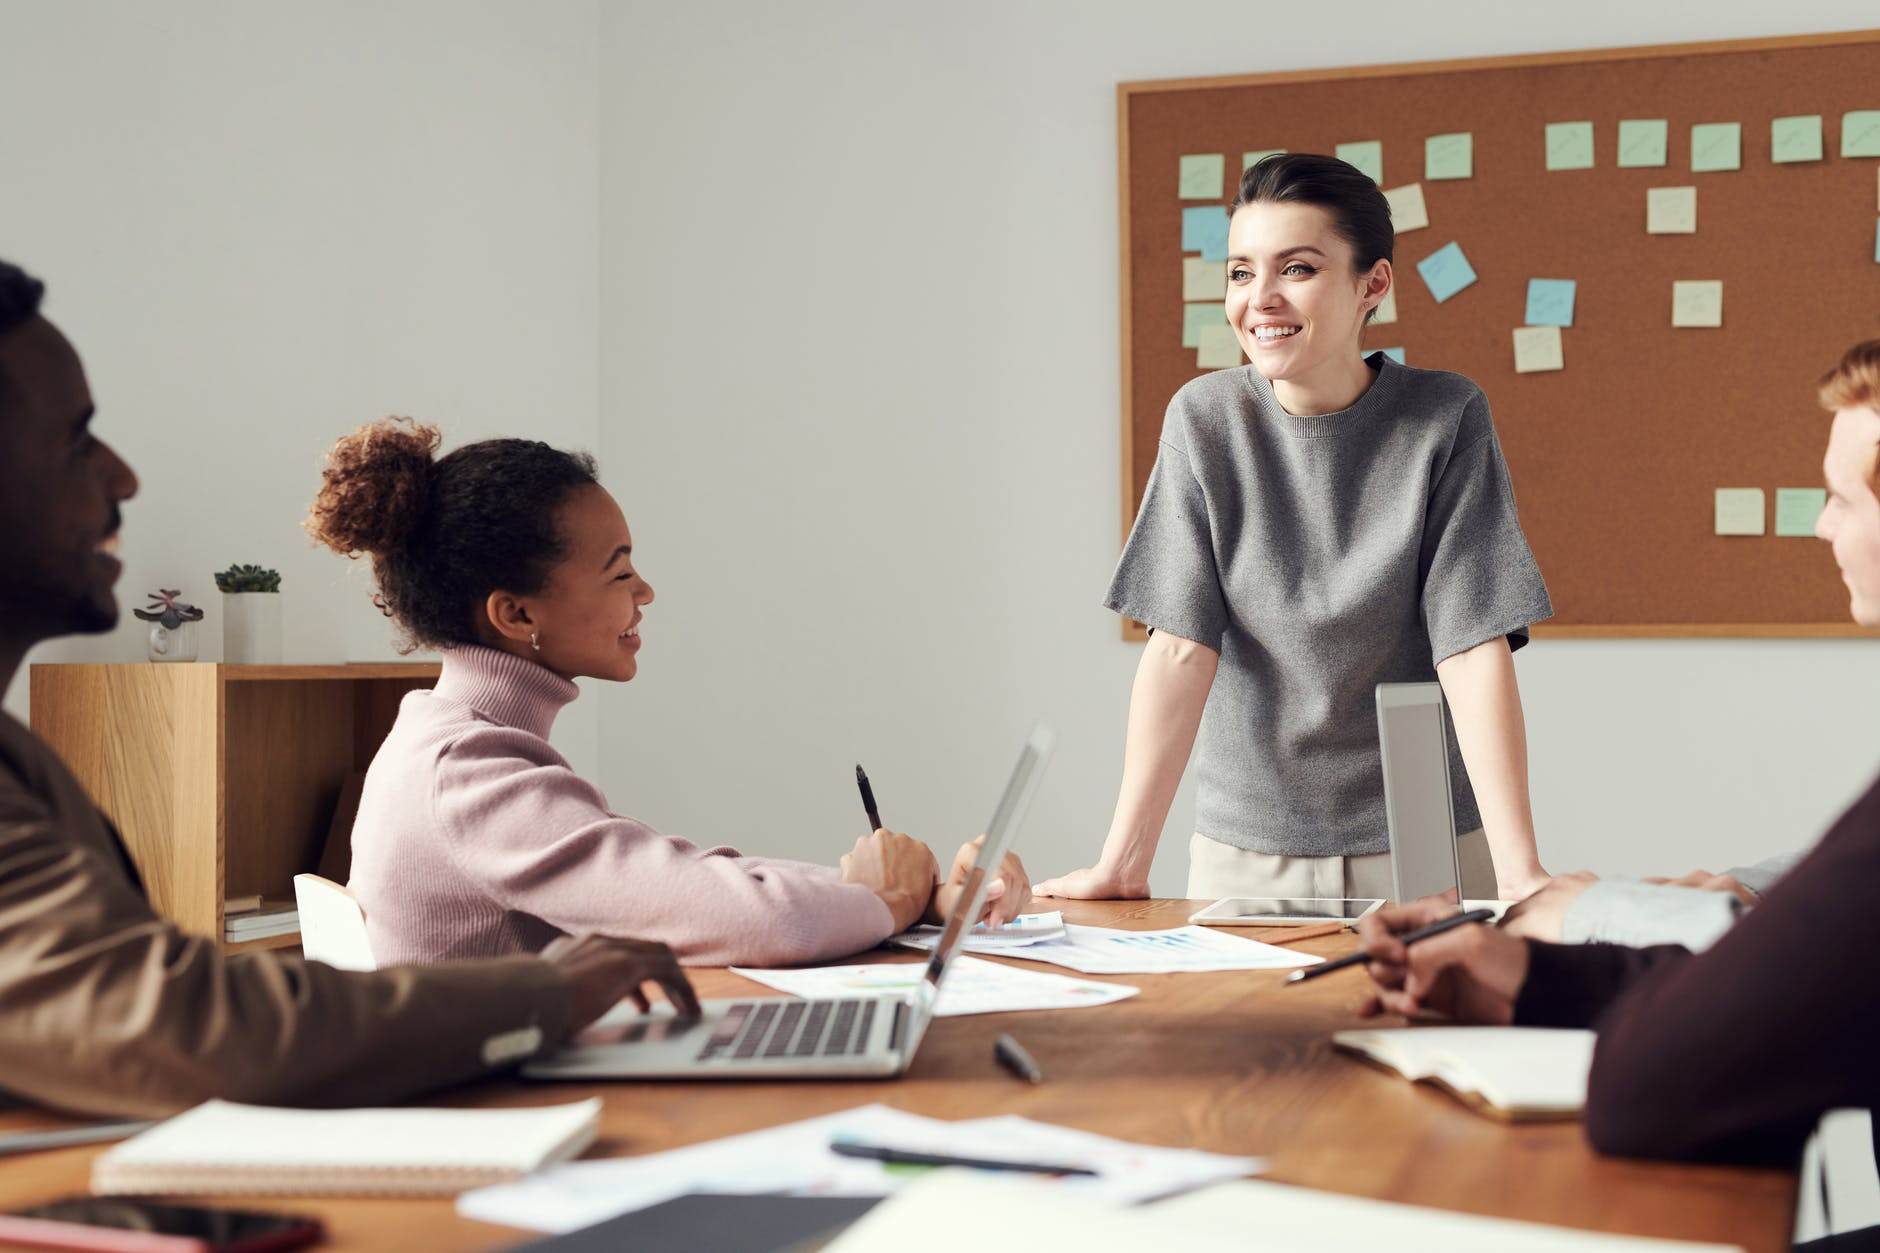 7 Tips For Women Who Want To Lead The Show At Work